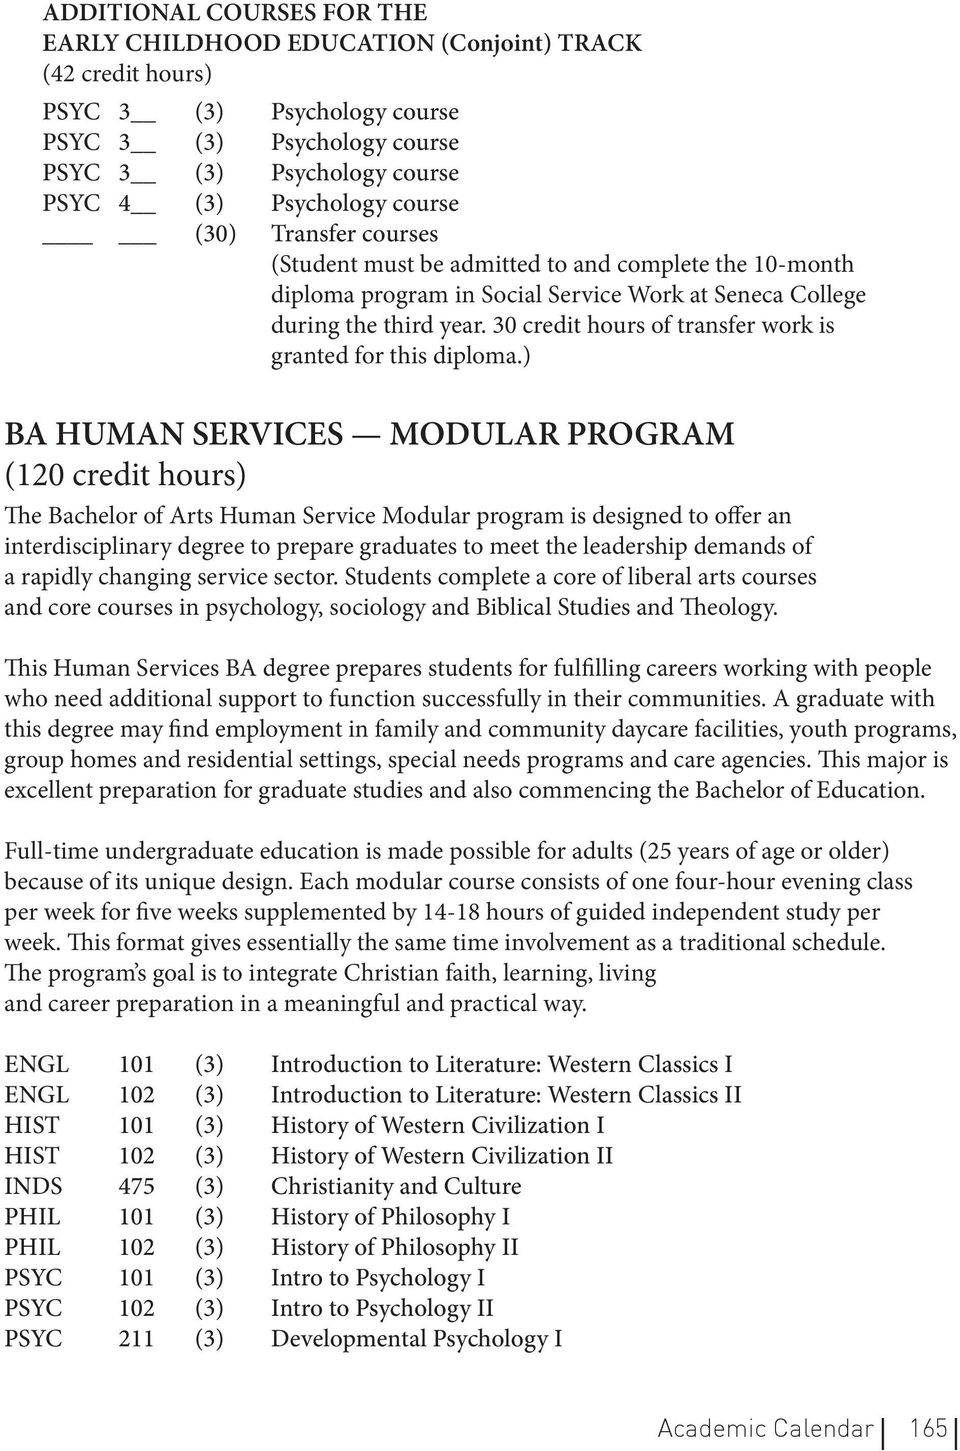 ) BA HUMAN SERVICES MODULAR PROGRAM (120 credit hours) The Bachelor of Arts Human Service Modular program is designed to offer an interdisciplinary degree to prepare graduates to meet the leadership